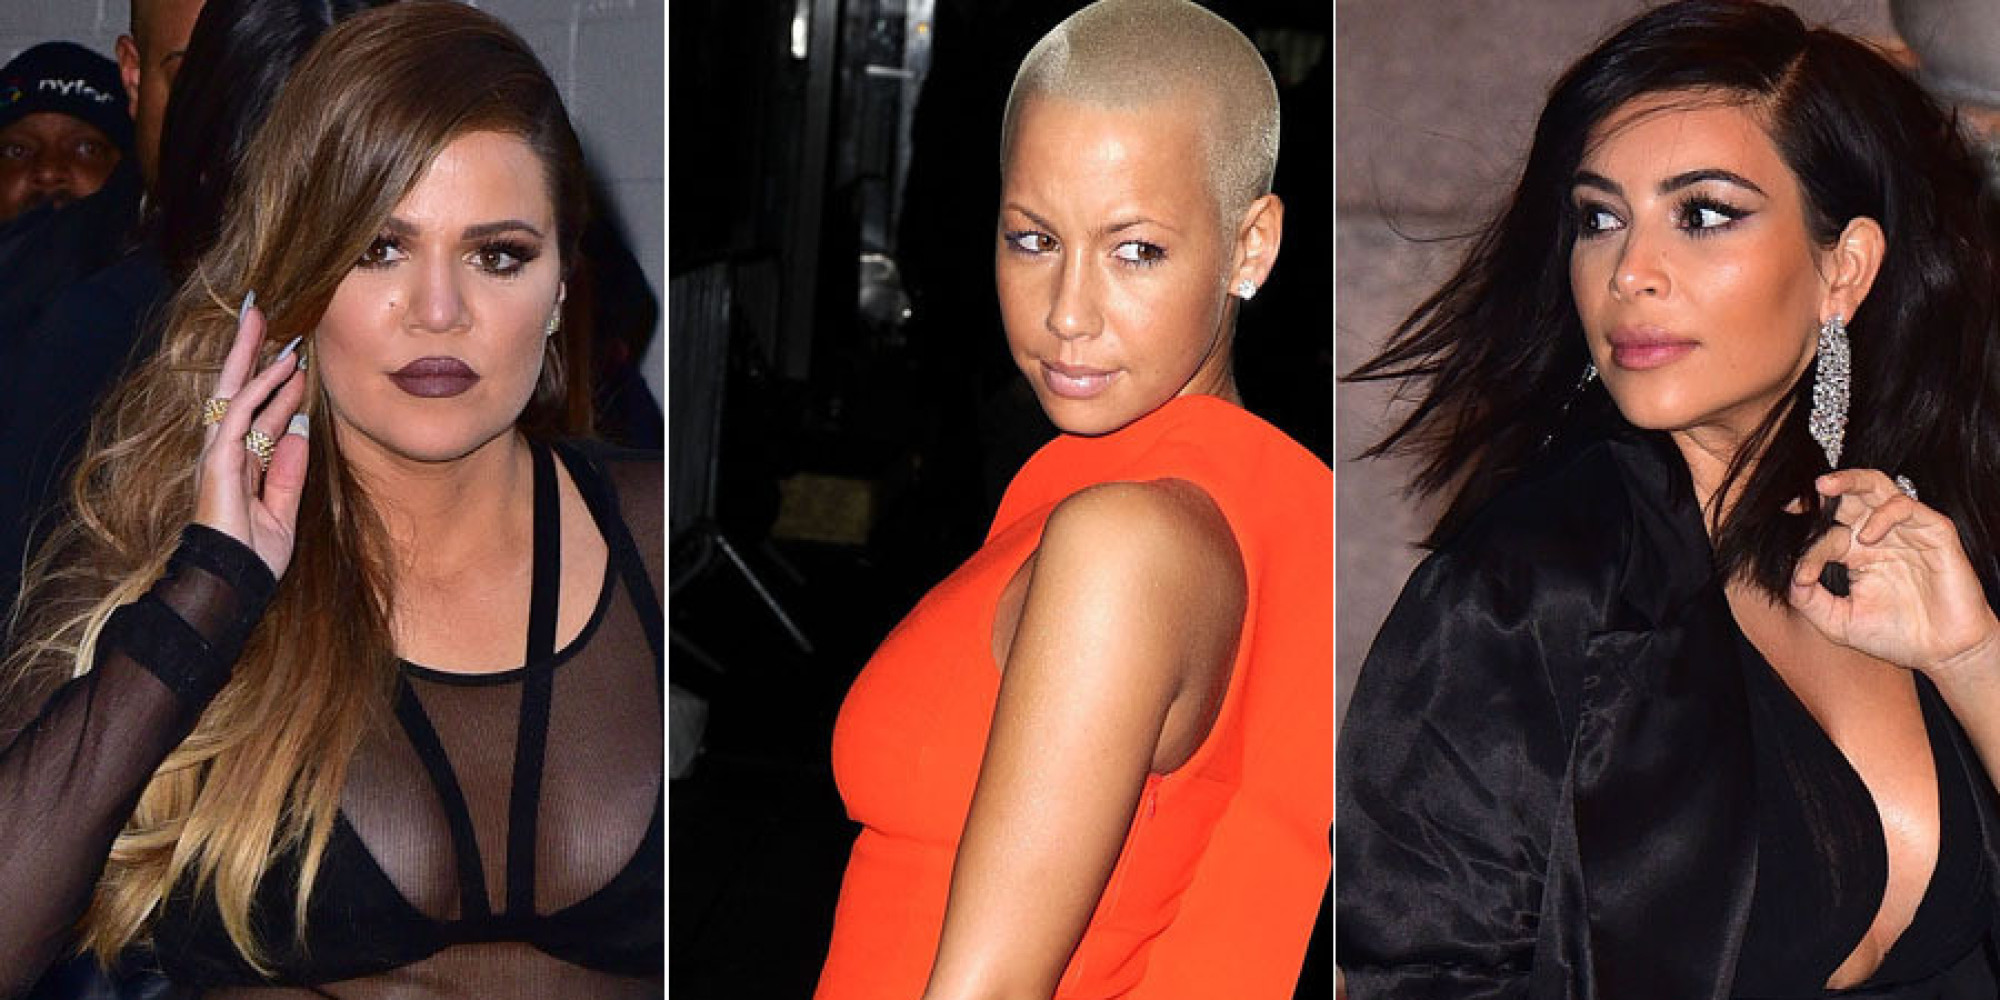 Who is khloe dating in Australia